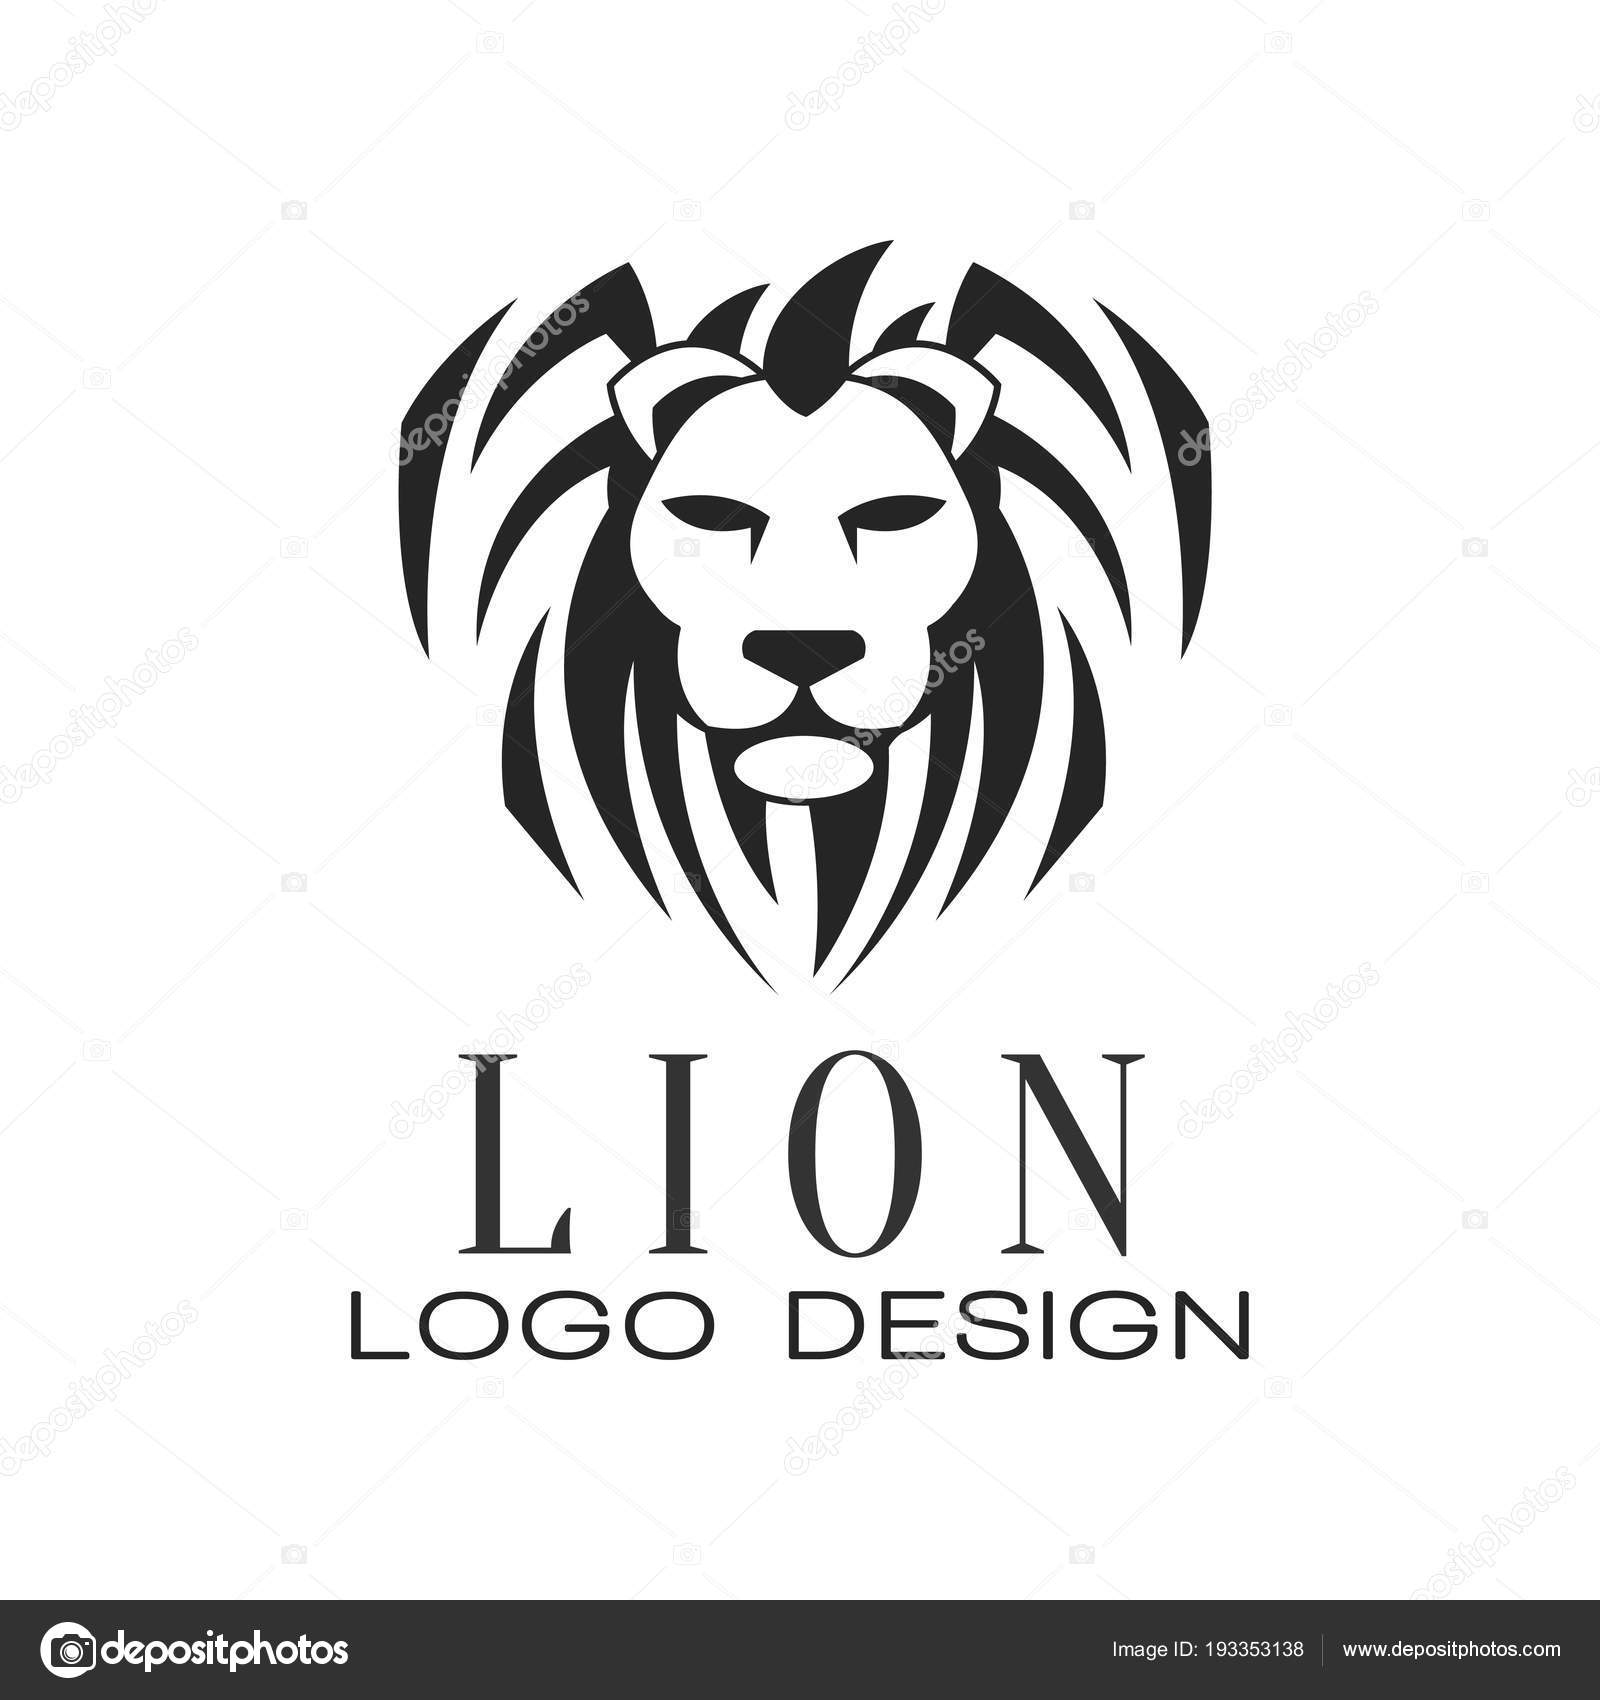 lion logo design element for poster banner embem badge tattoo t shirt print vector illustration isolated on a white background vector by topvectors